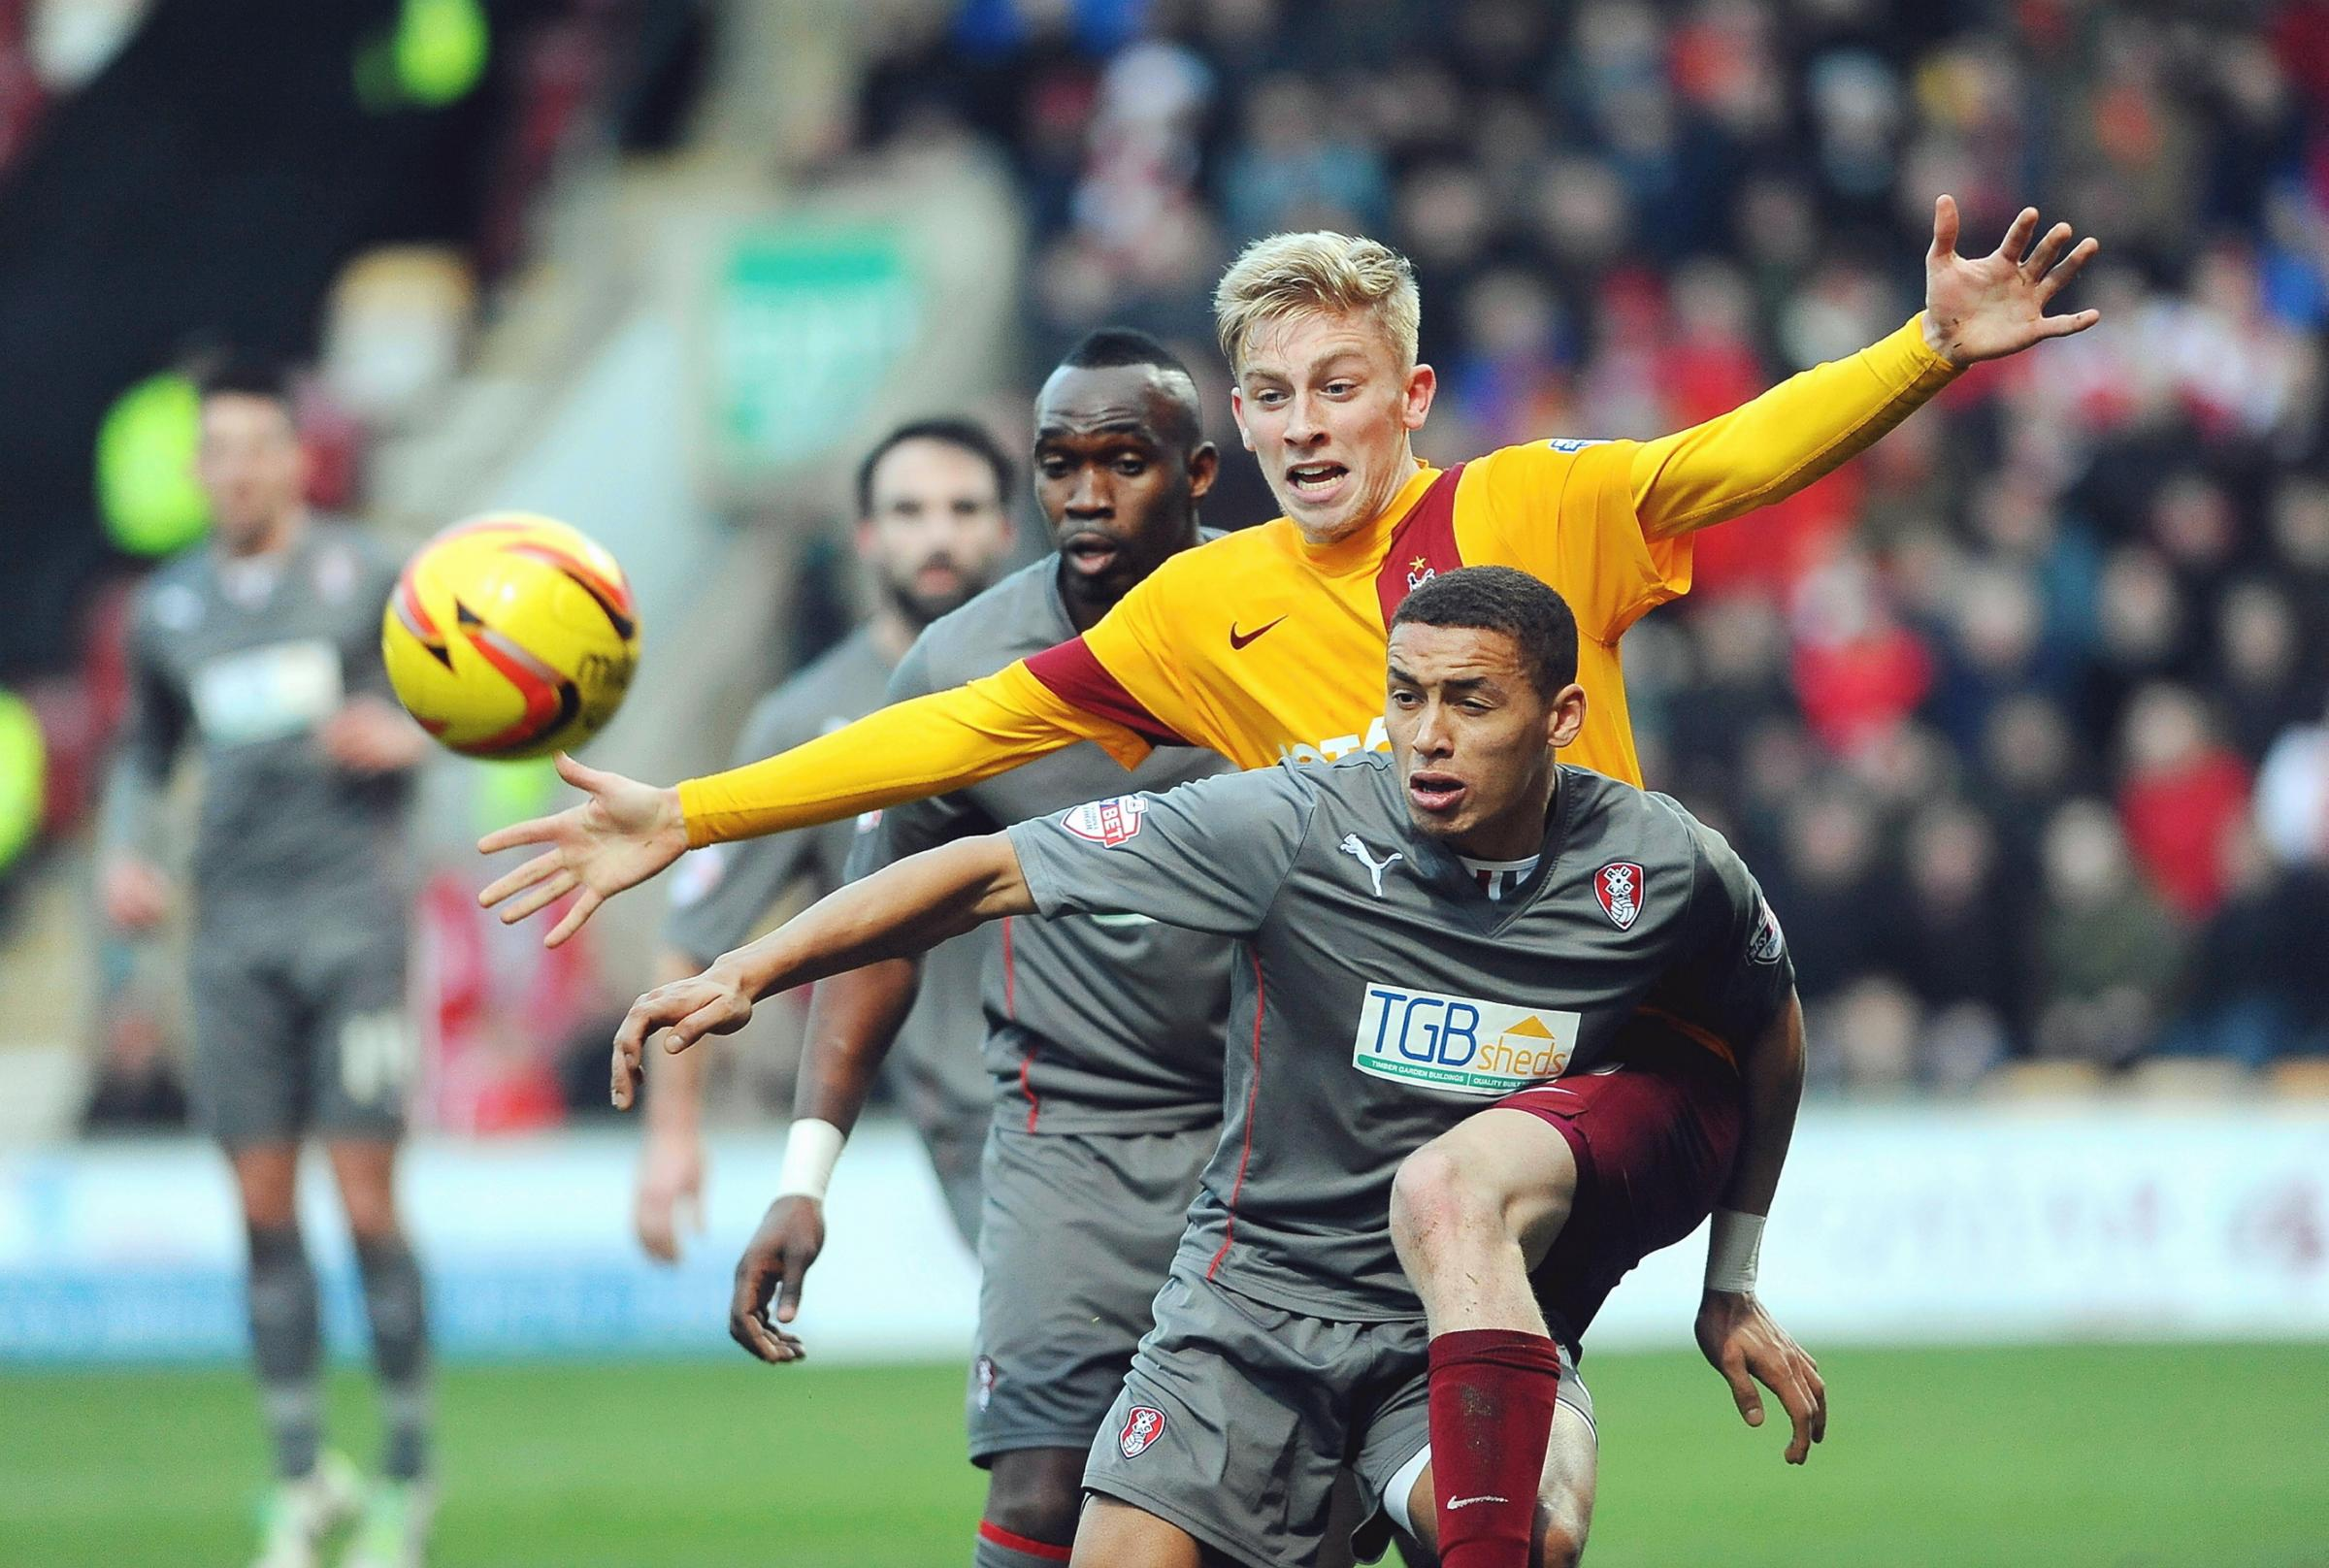 Rookie Bantams striker McBurnie enjoying 'whirlwind' start to career